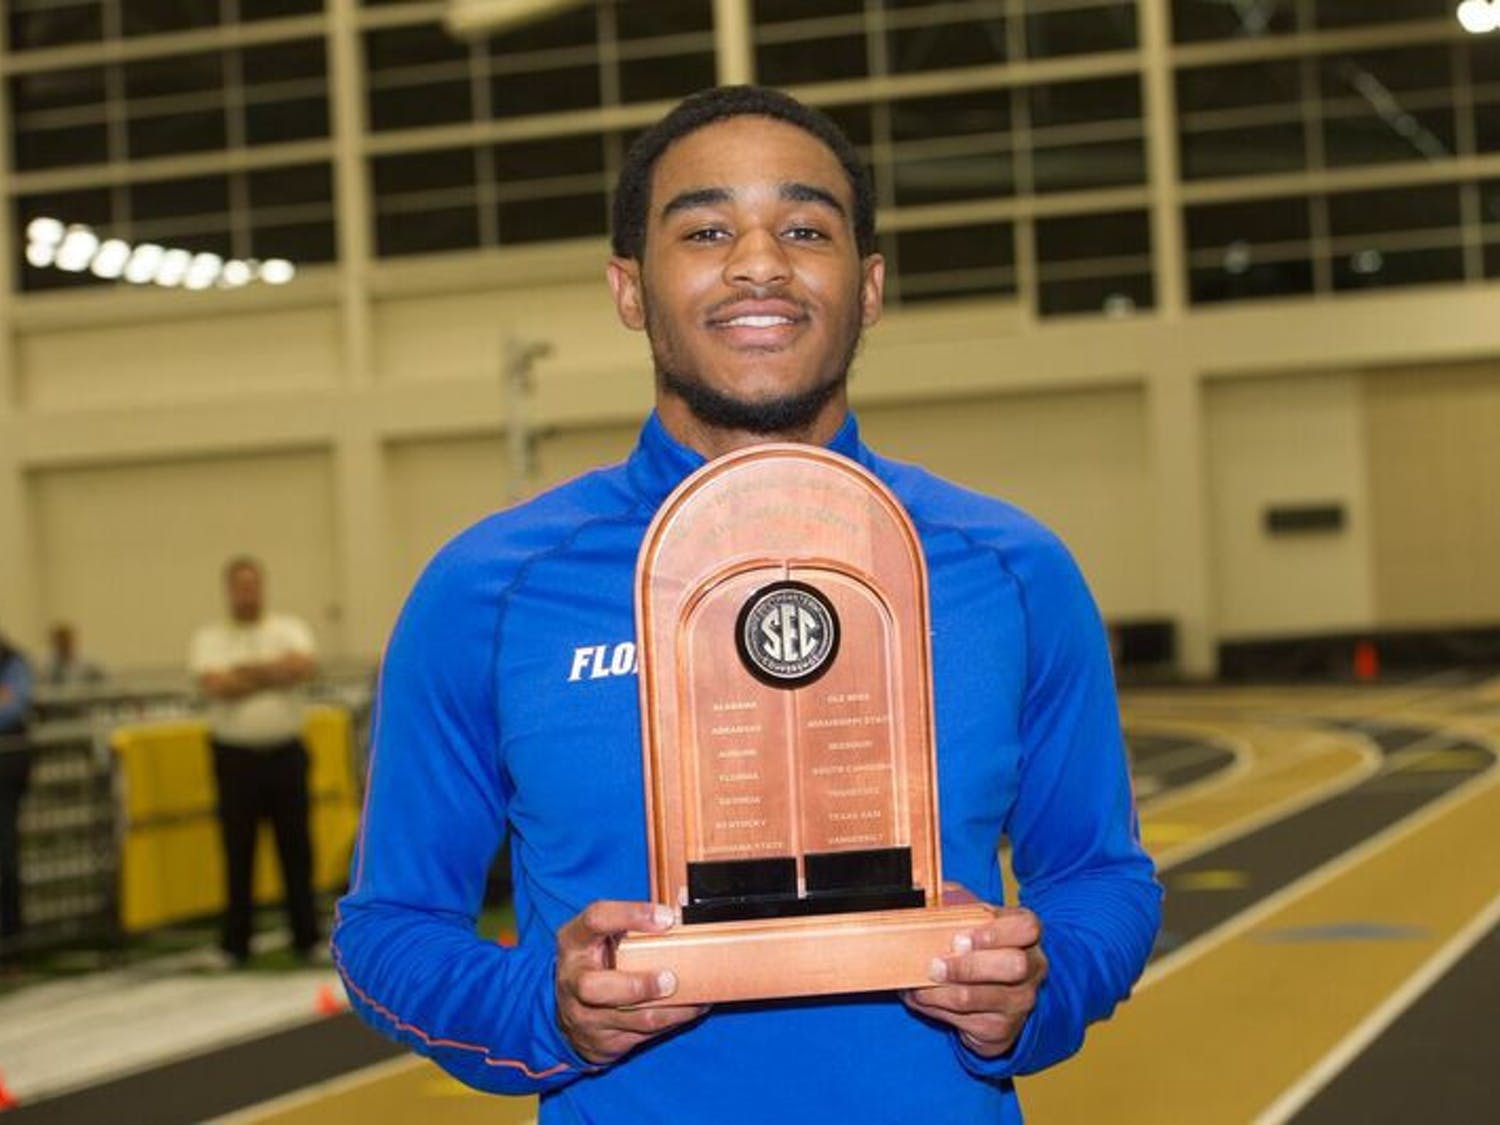 UF's KeAndre Bates poses with a trophy during the SEC Indoor Championships, which ran from Feb. 24-25, 2017, in Nashville, Tennessee. The juniorwon titles in the men's long jump and men's triple jump.